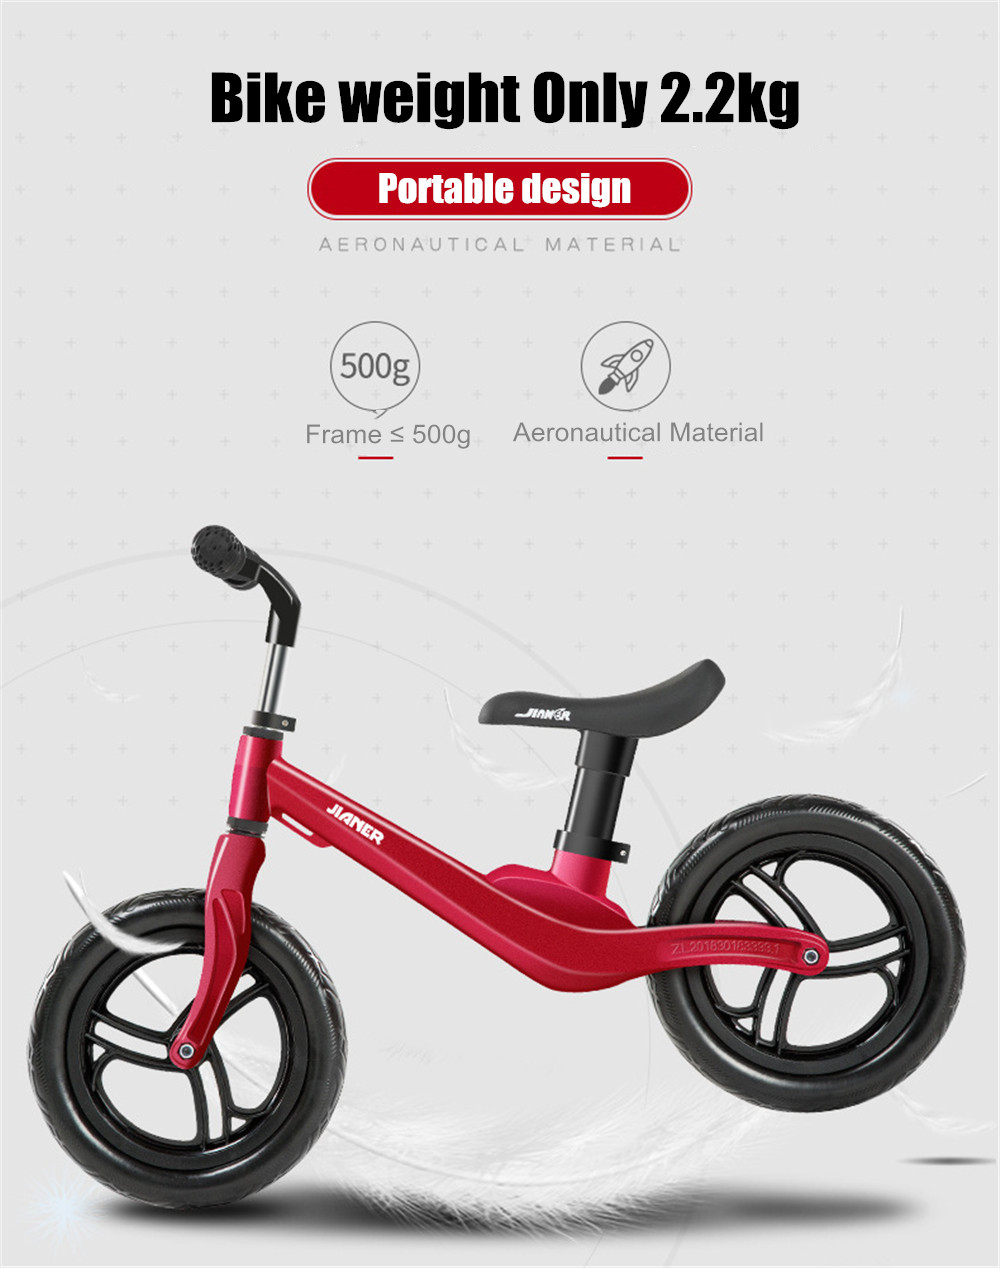 """HTB1u.MlbffsK1RjSszgq6yXzpXaH 12"""" Push Balance Bike Ultralight Kids Riding Bicycle for 1- 4 Years Baby Walker Scooter No-Pedal Learn To Ride Pre Bike EVA Tire"""